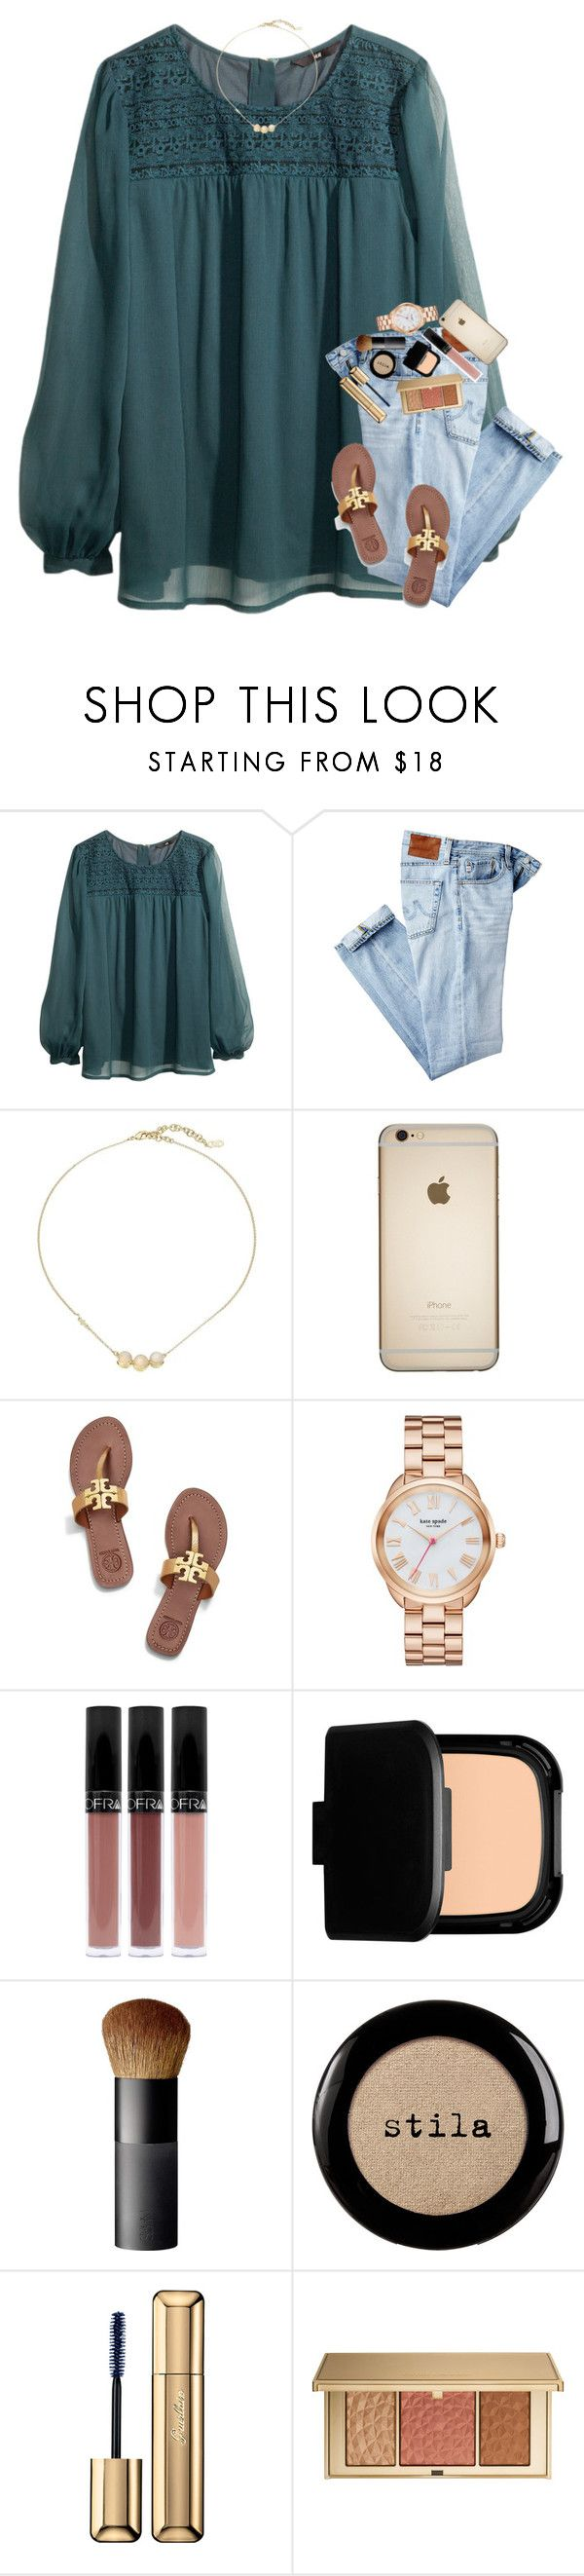 """""""pretty ☺️☺️☺️"""" by mehanahan ❤ liked on Polyvore featuring H&M, AG Adriano Goldschmied, Cole Haan, Tory Burch, Kate Spade, NARS Cosmetics, Stila, Guerlain and Estée Lauder"""